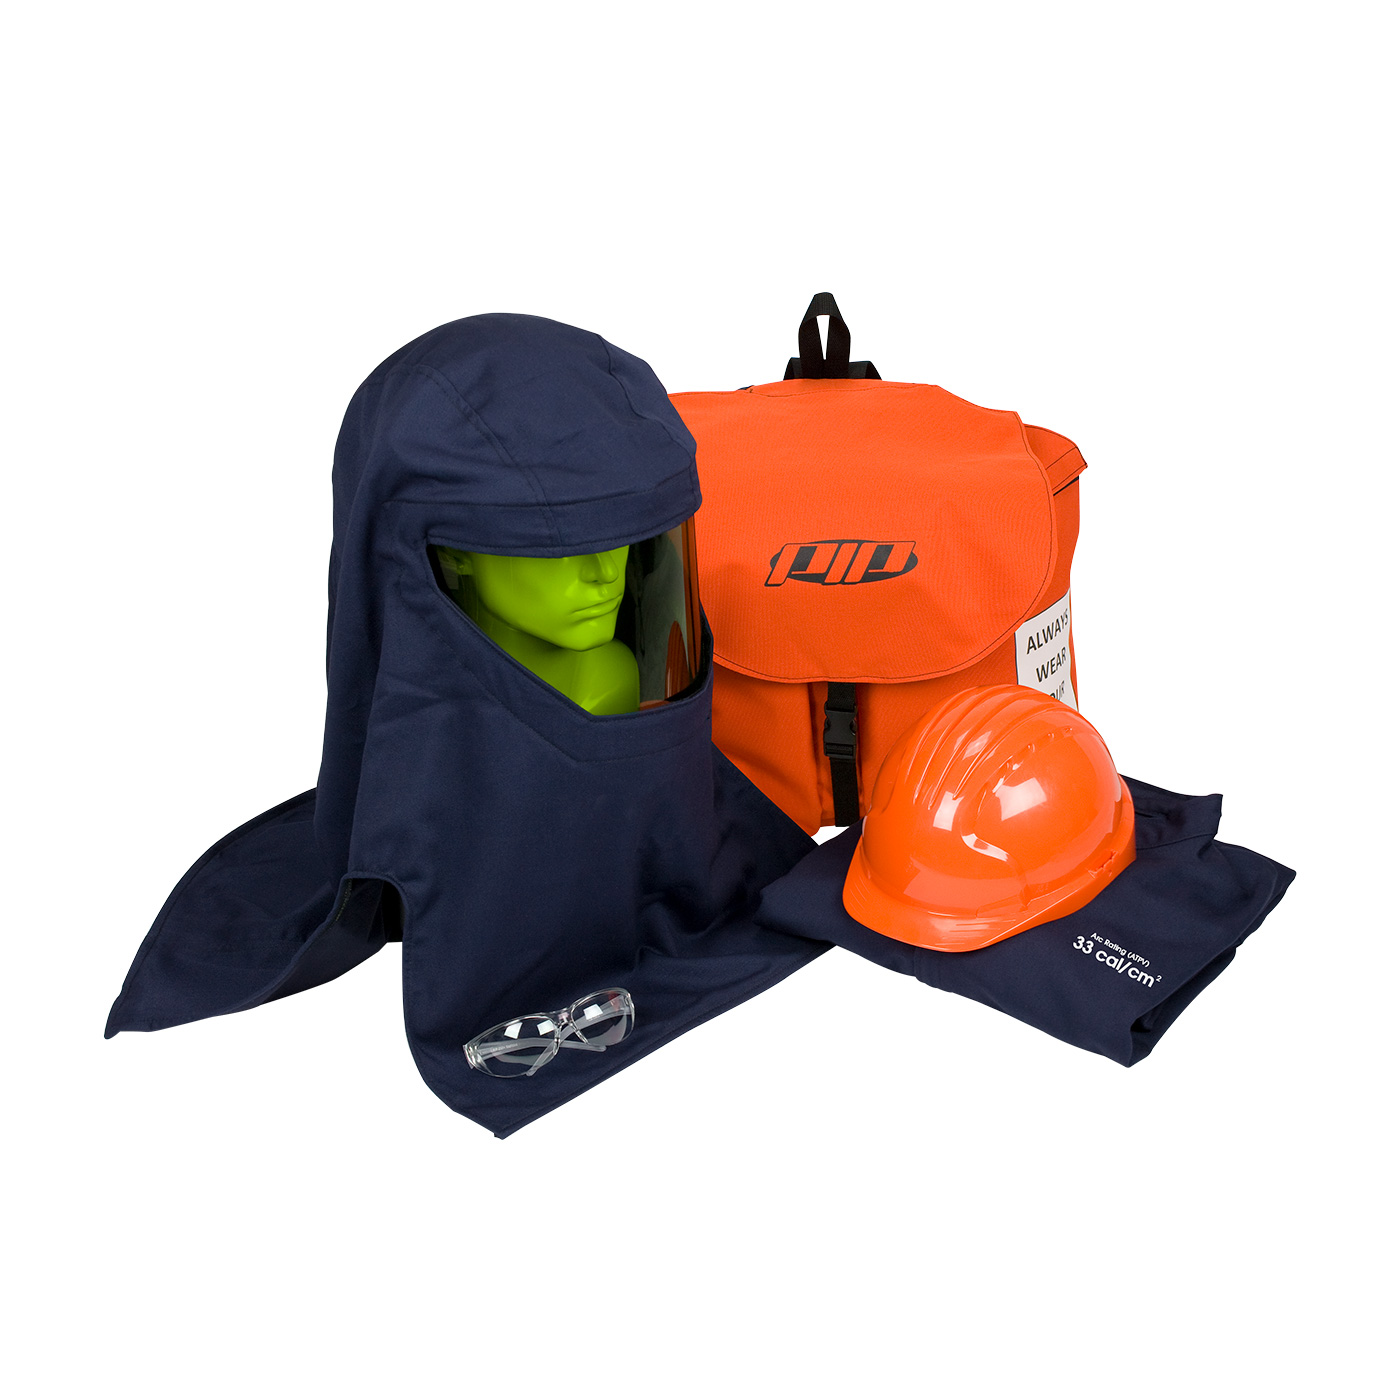 #9150-52946 PIP® PPE 3 Arc Flash Kit - 33 Cal/cm2 contains coverall, balaclava, arc hood, safety glasses, hard hat, and back pack